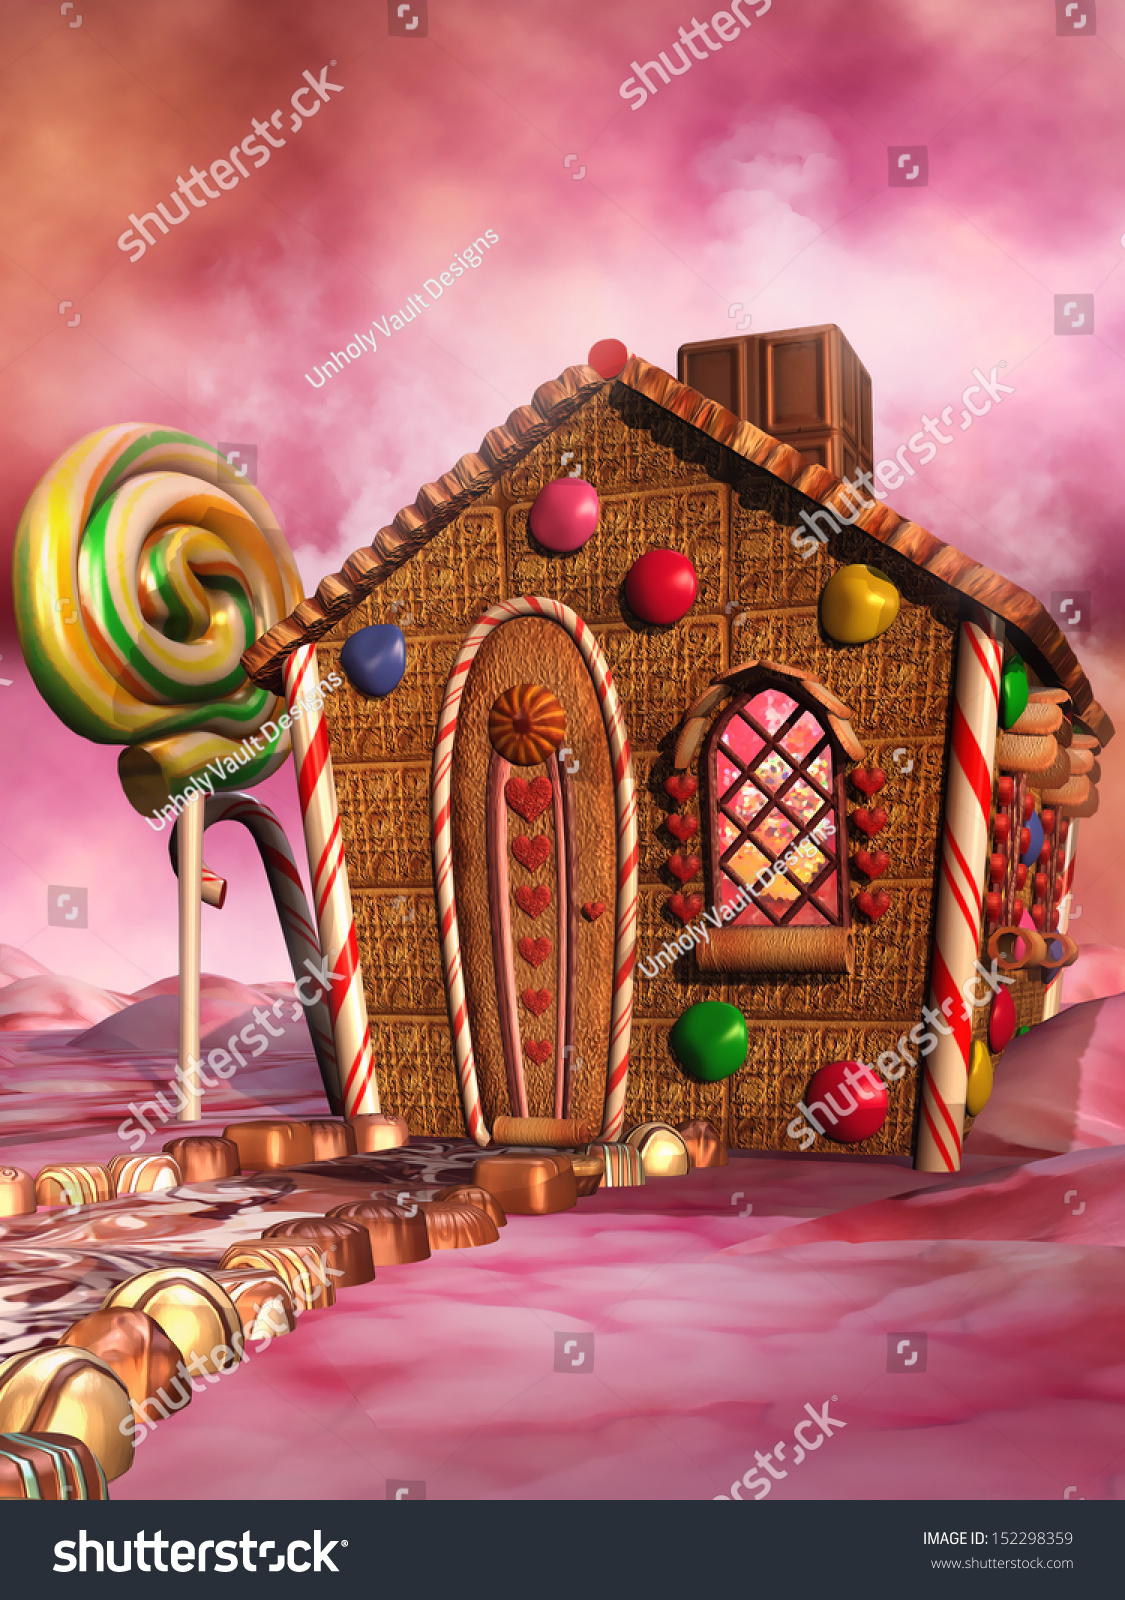 Pink Scenery Fantasy Candy House Stock Illustration